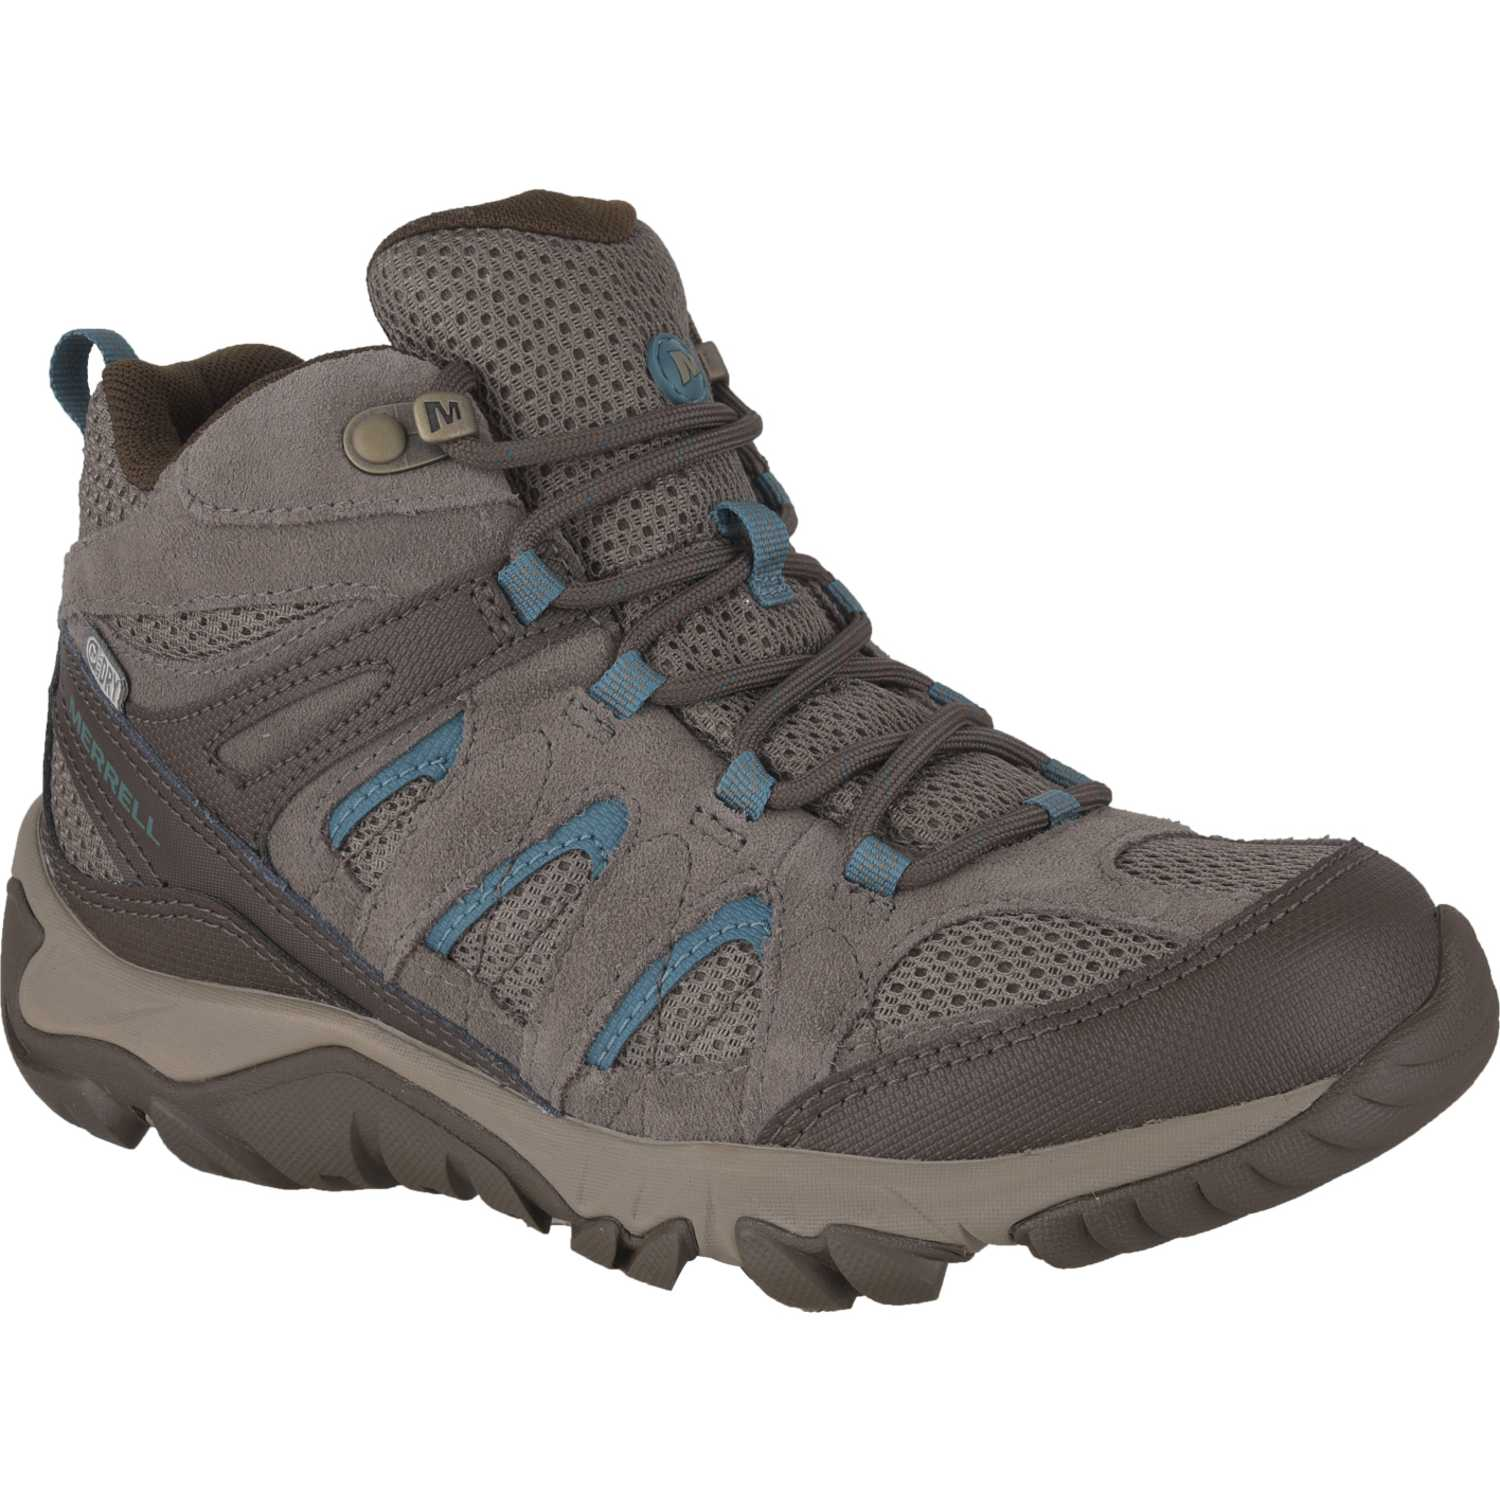 Marron Merrell Outmost Deportivo Mujer Vent De Mid Wtpf H29DIWYE